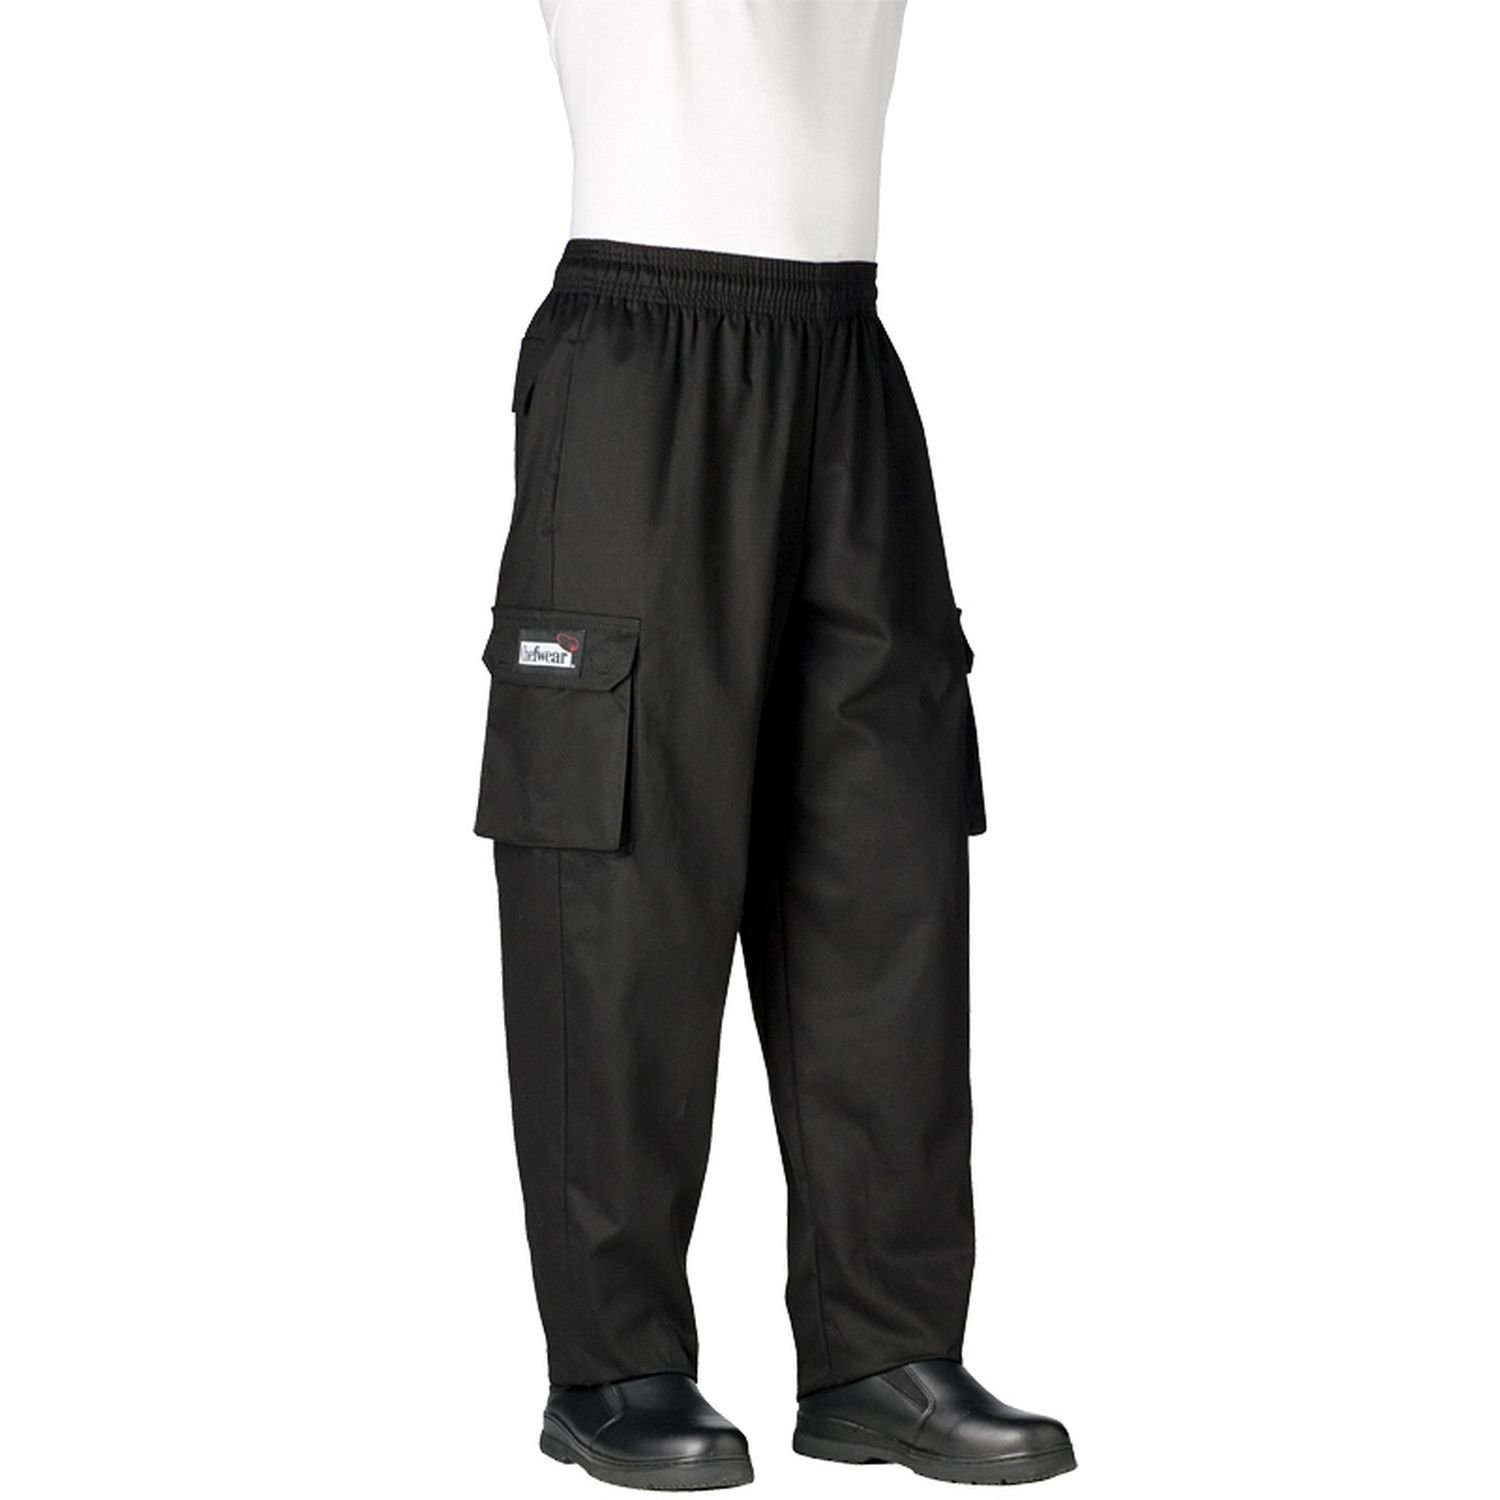 Chefwear Men's Unisex Cargo Cotton Chef Pant, Black, Medium